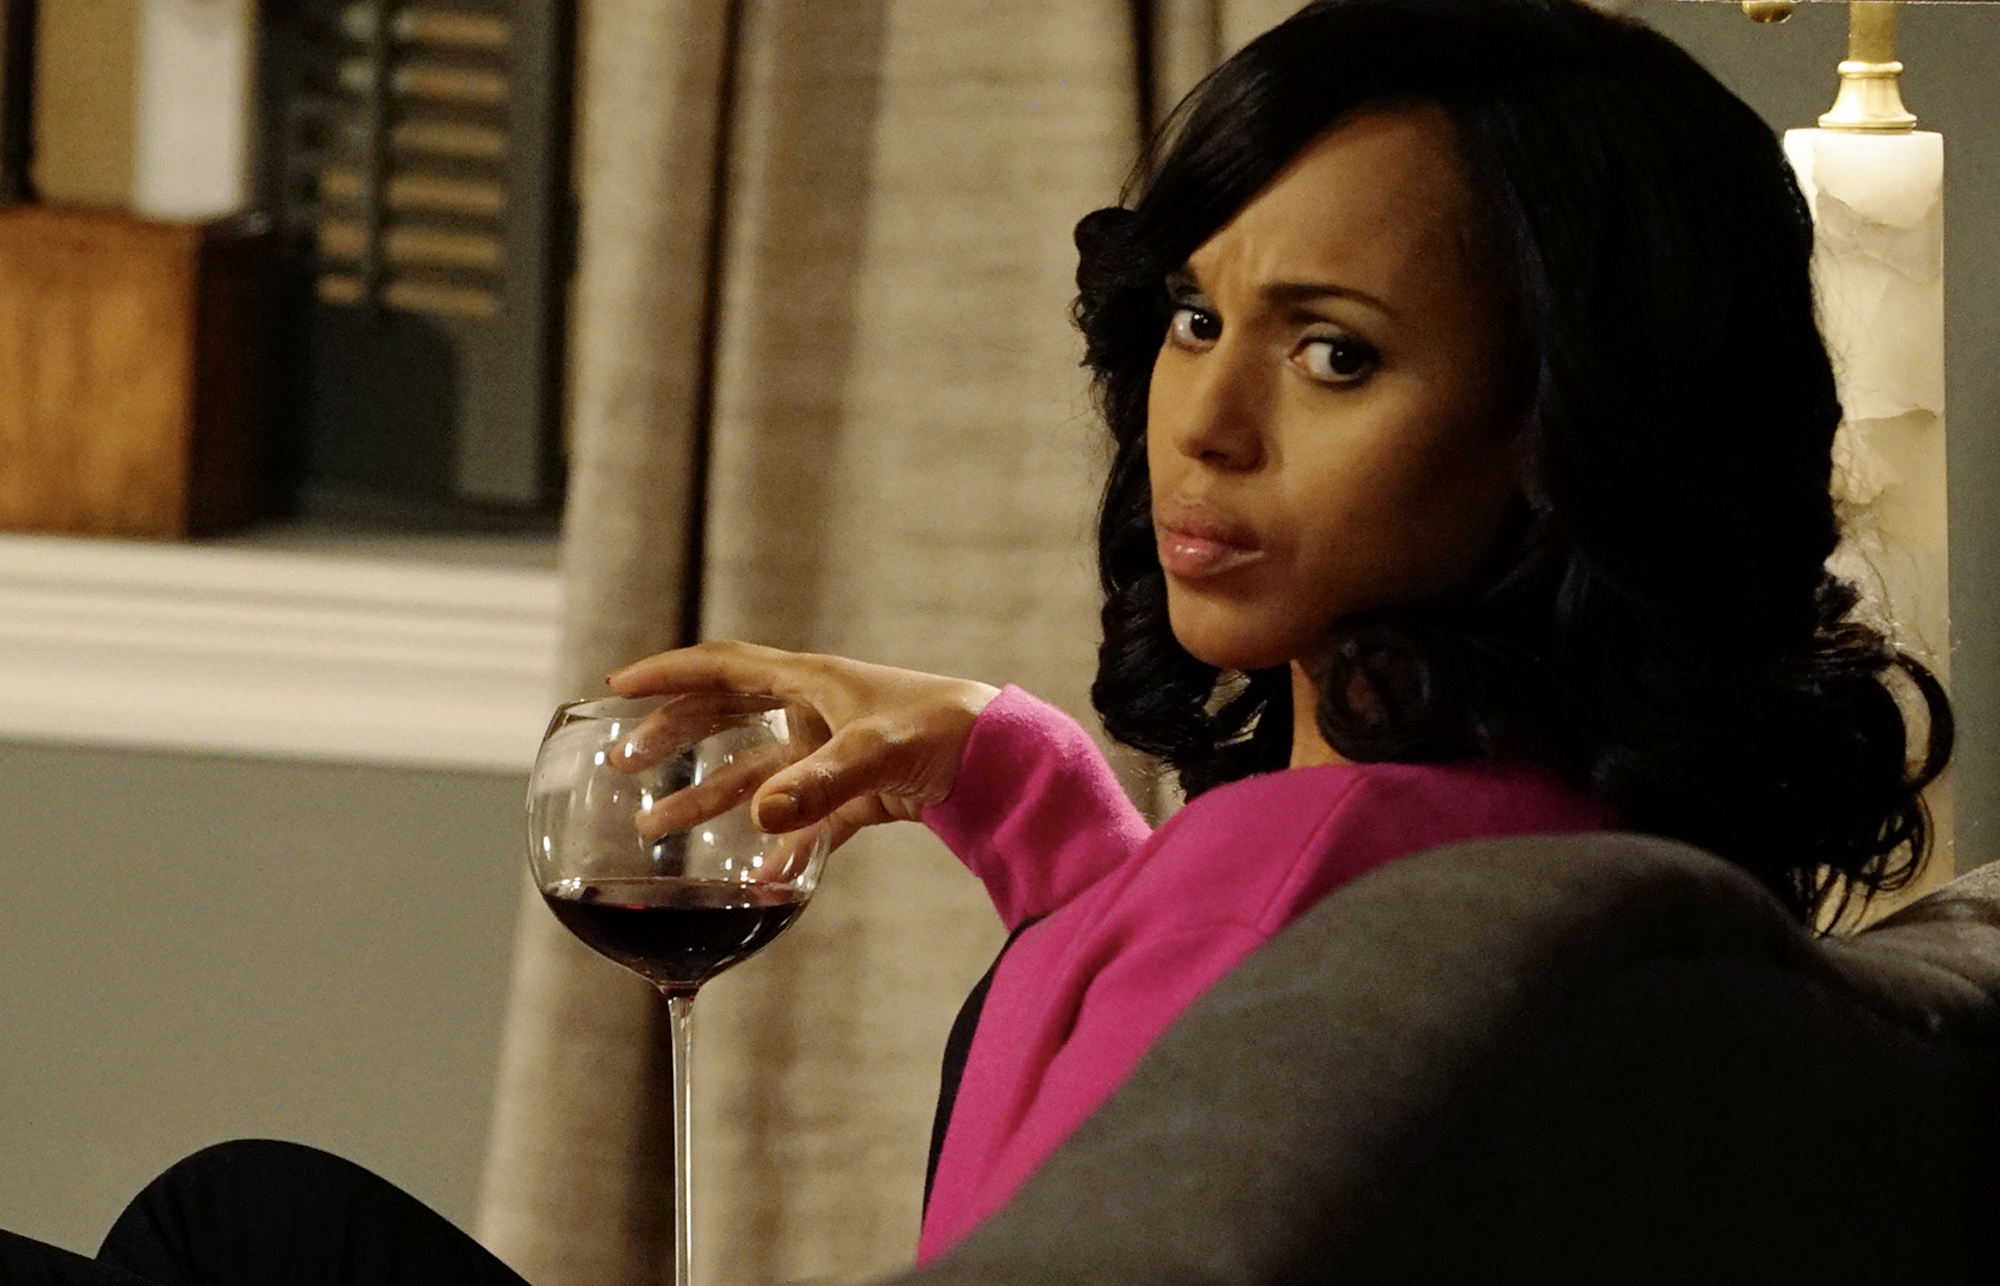 Best shows on Netflix to watch right now April 2020 - Scandal featuring Kerry Washington